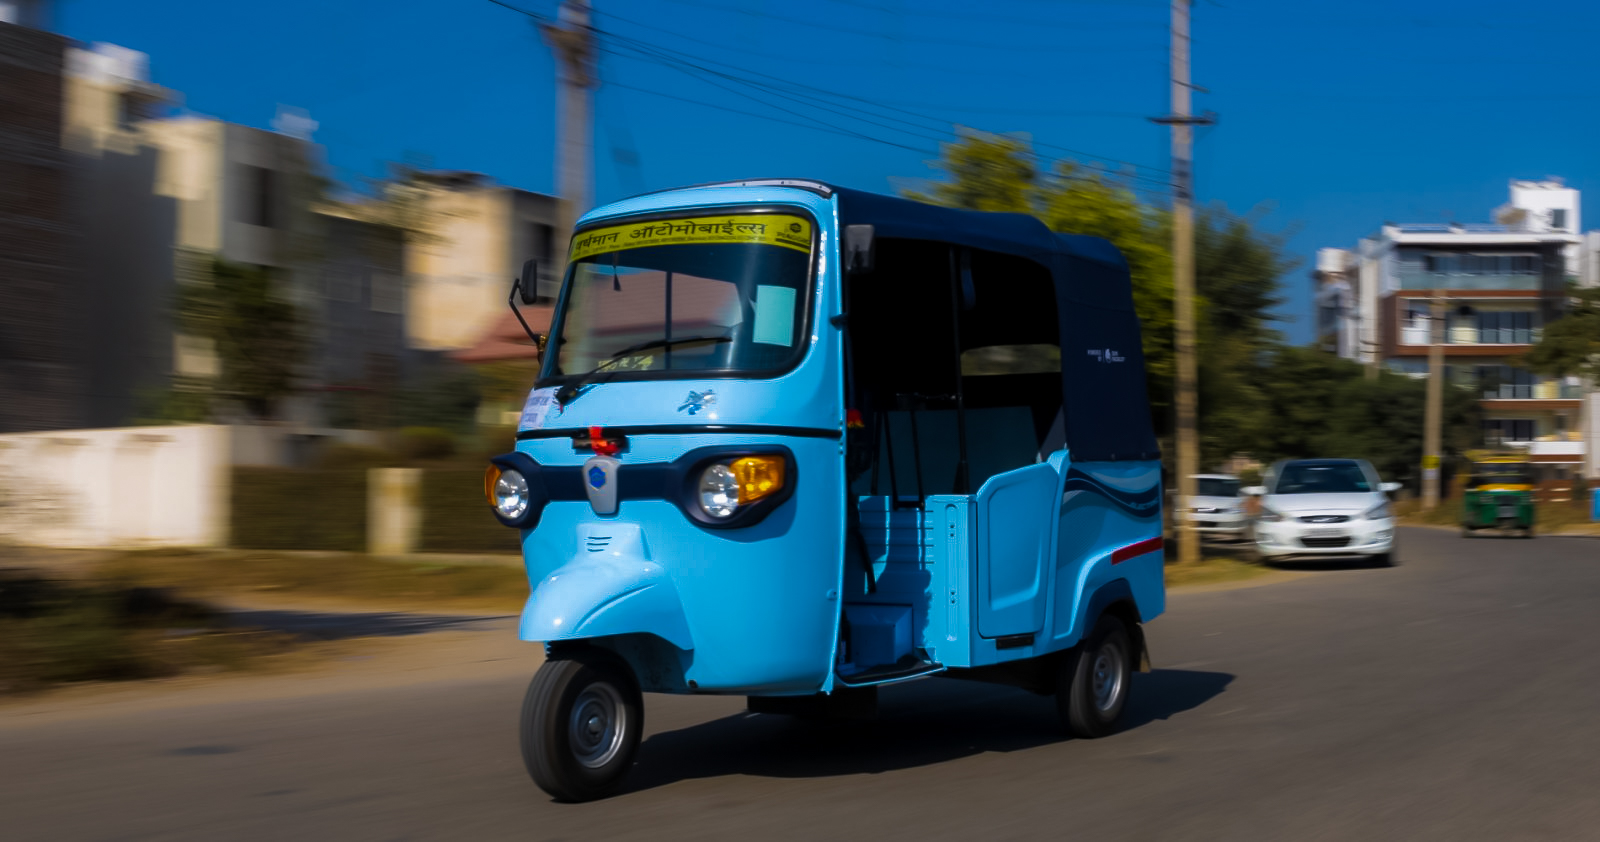 Auto-rickshaw with battery swapping technology